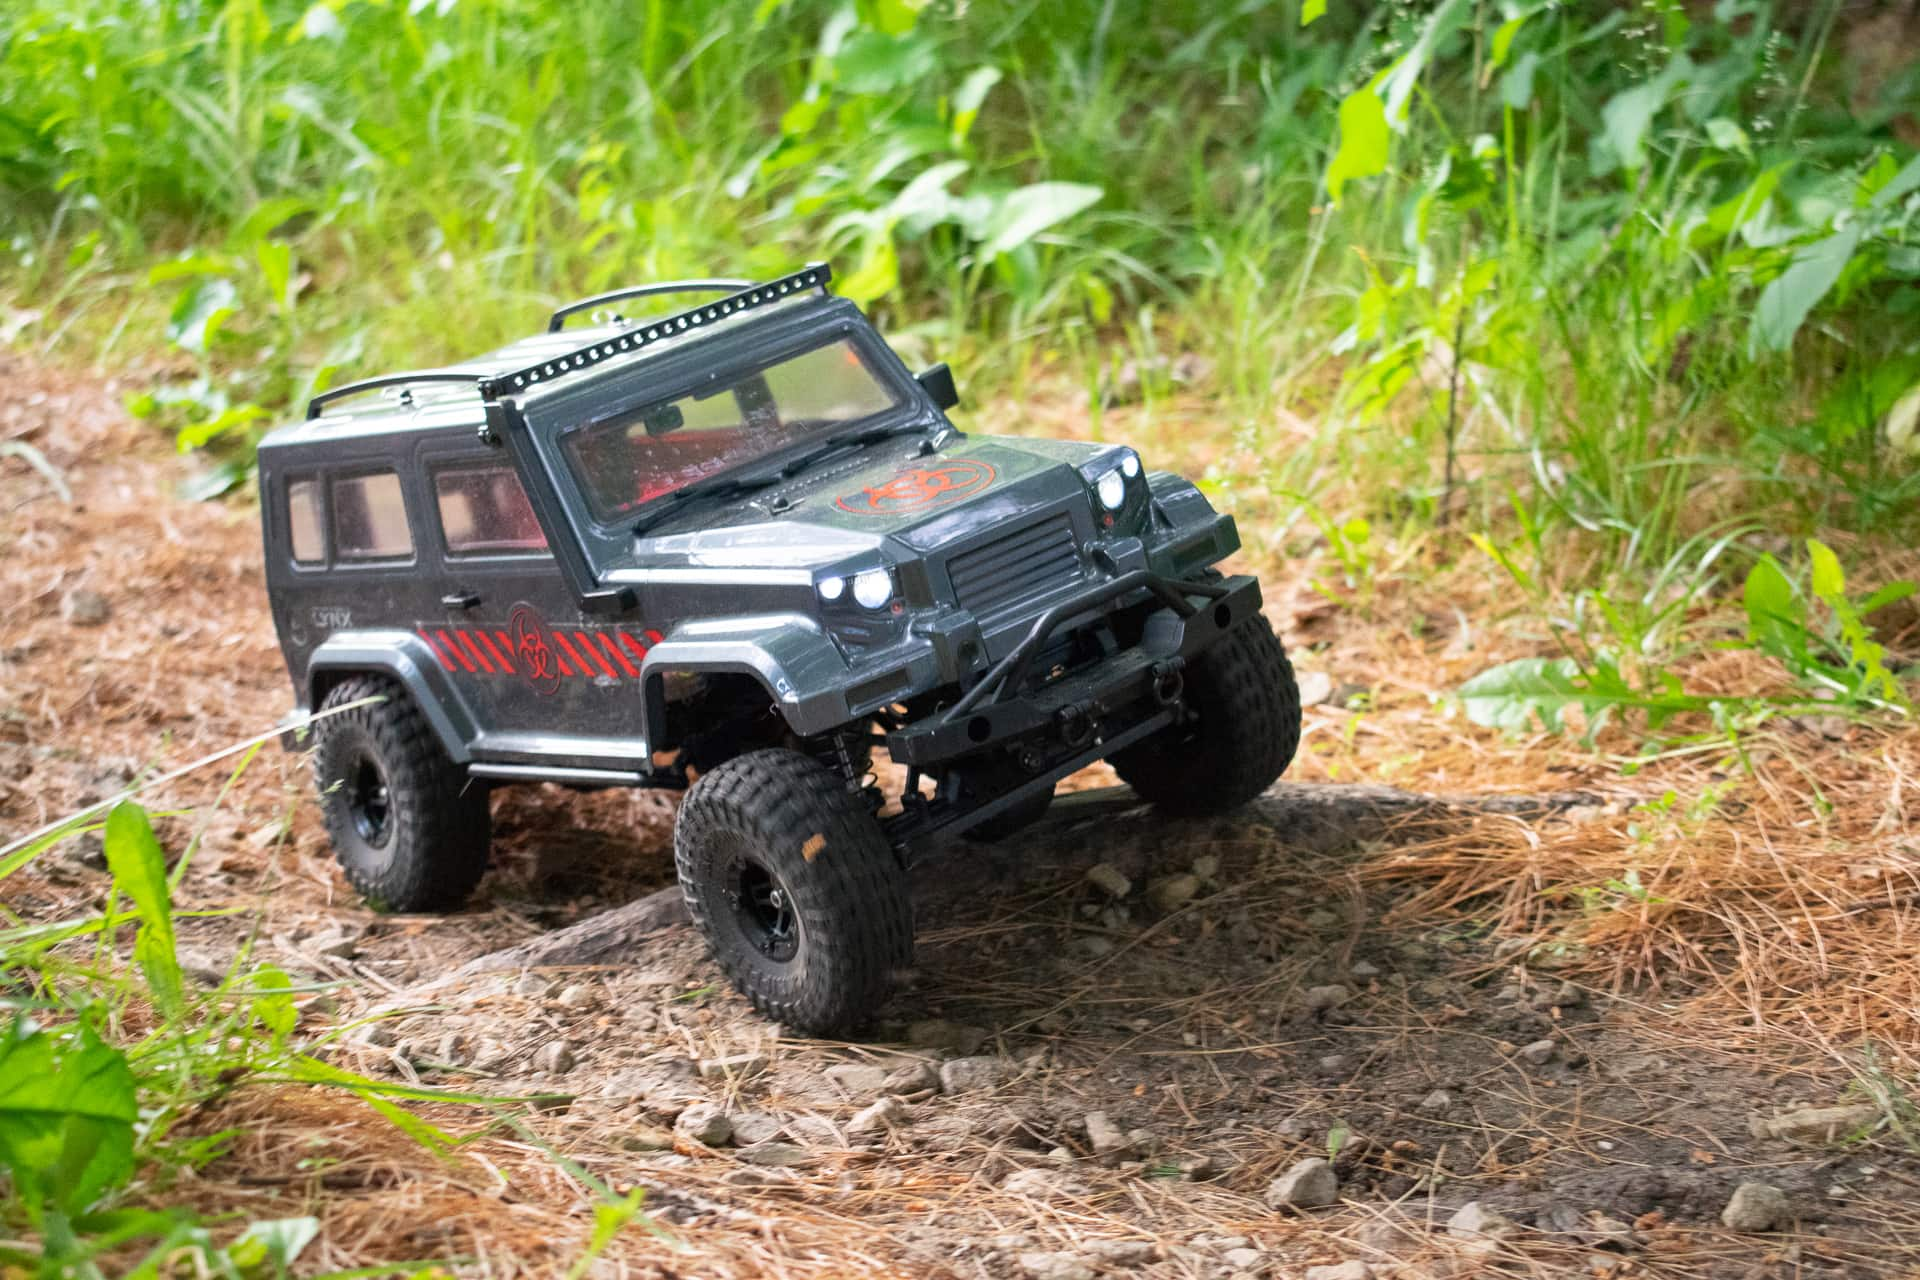 Carisma Scale Adventure Lynx ORV - Trail